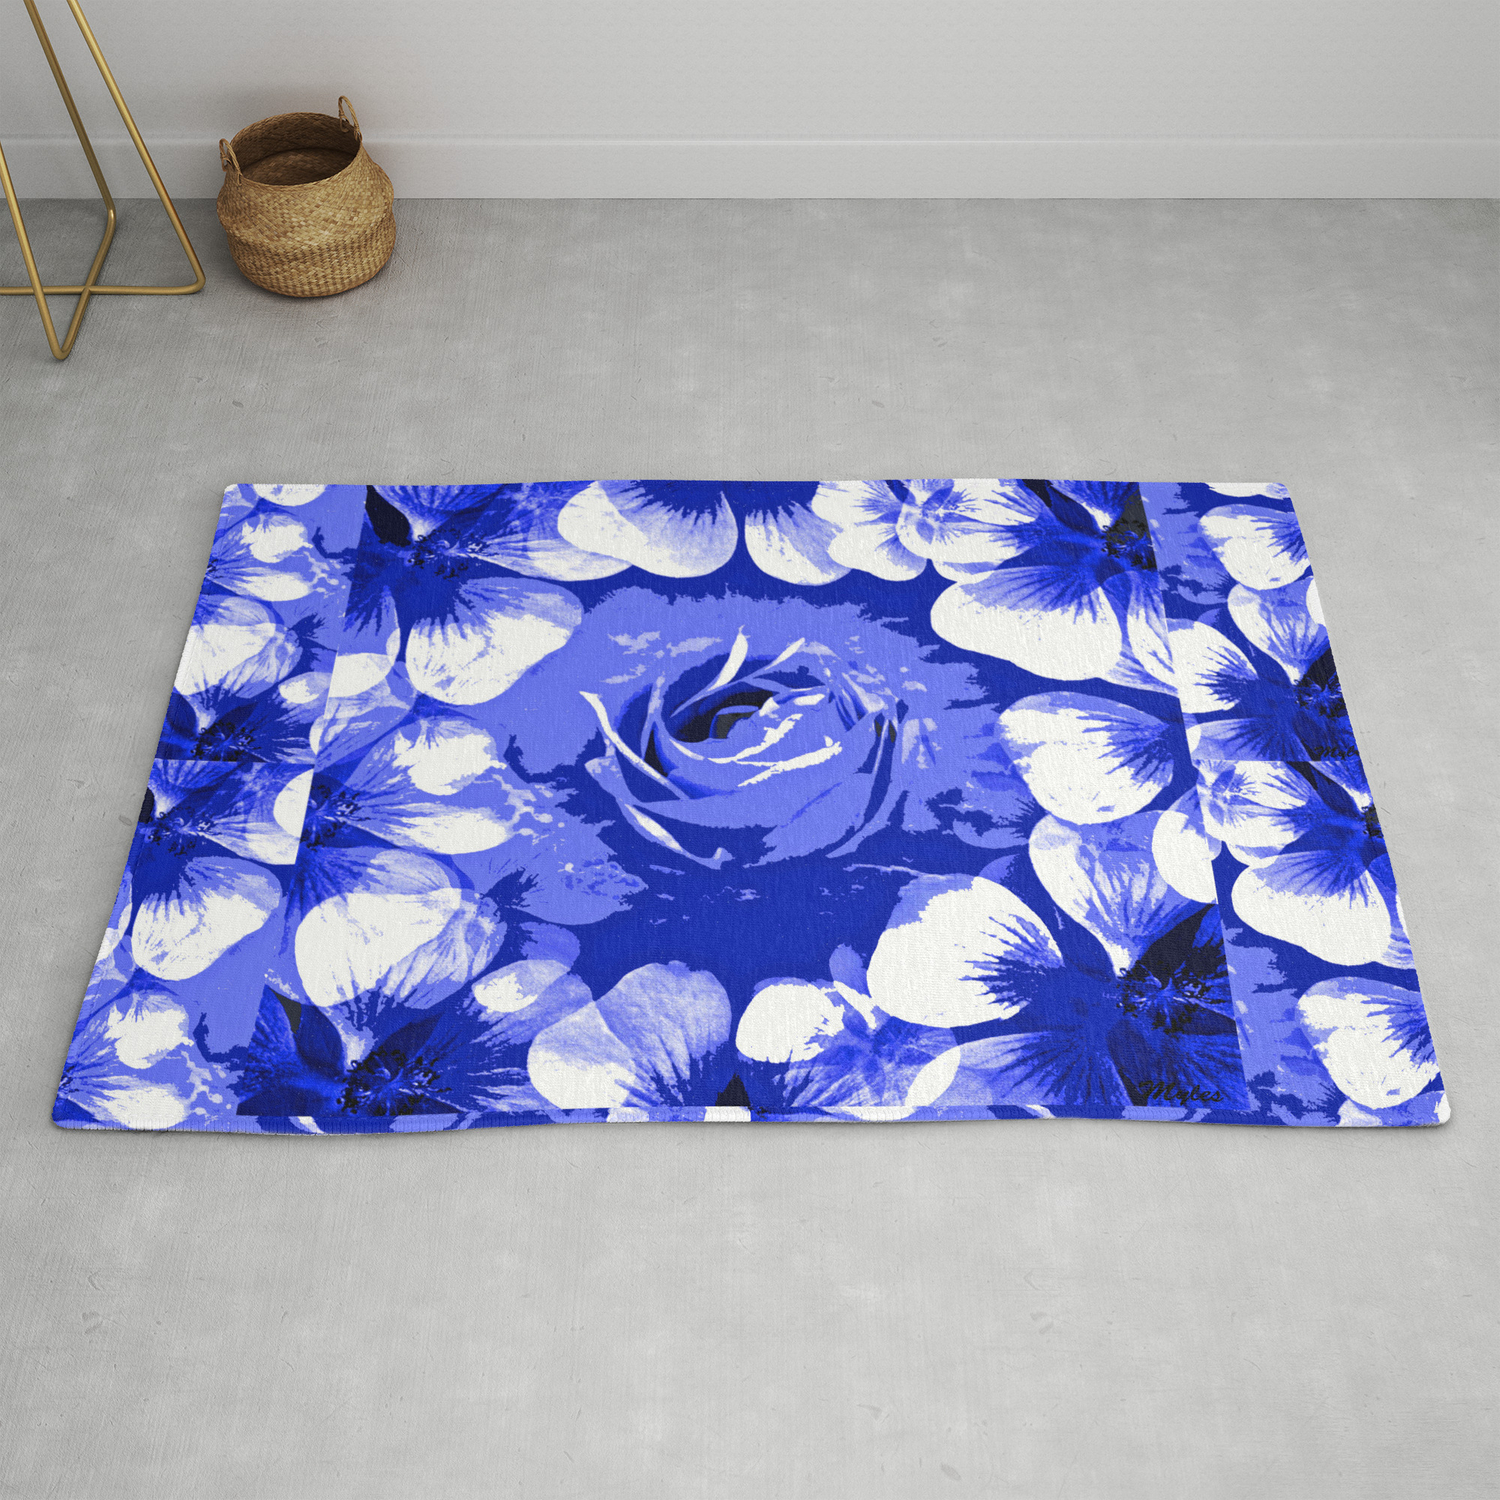 Roses Blue And White Toile 2 Rug By